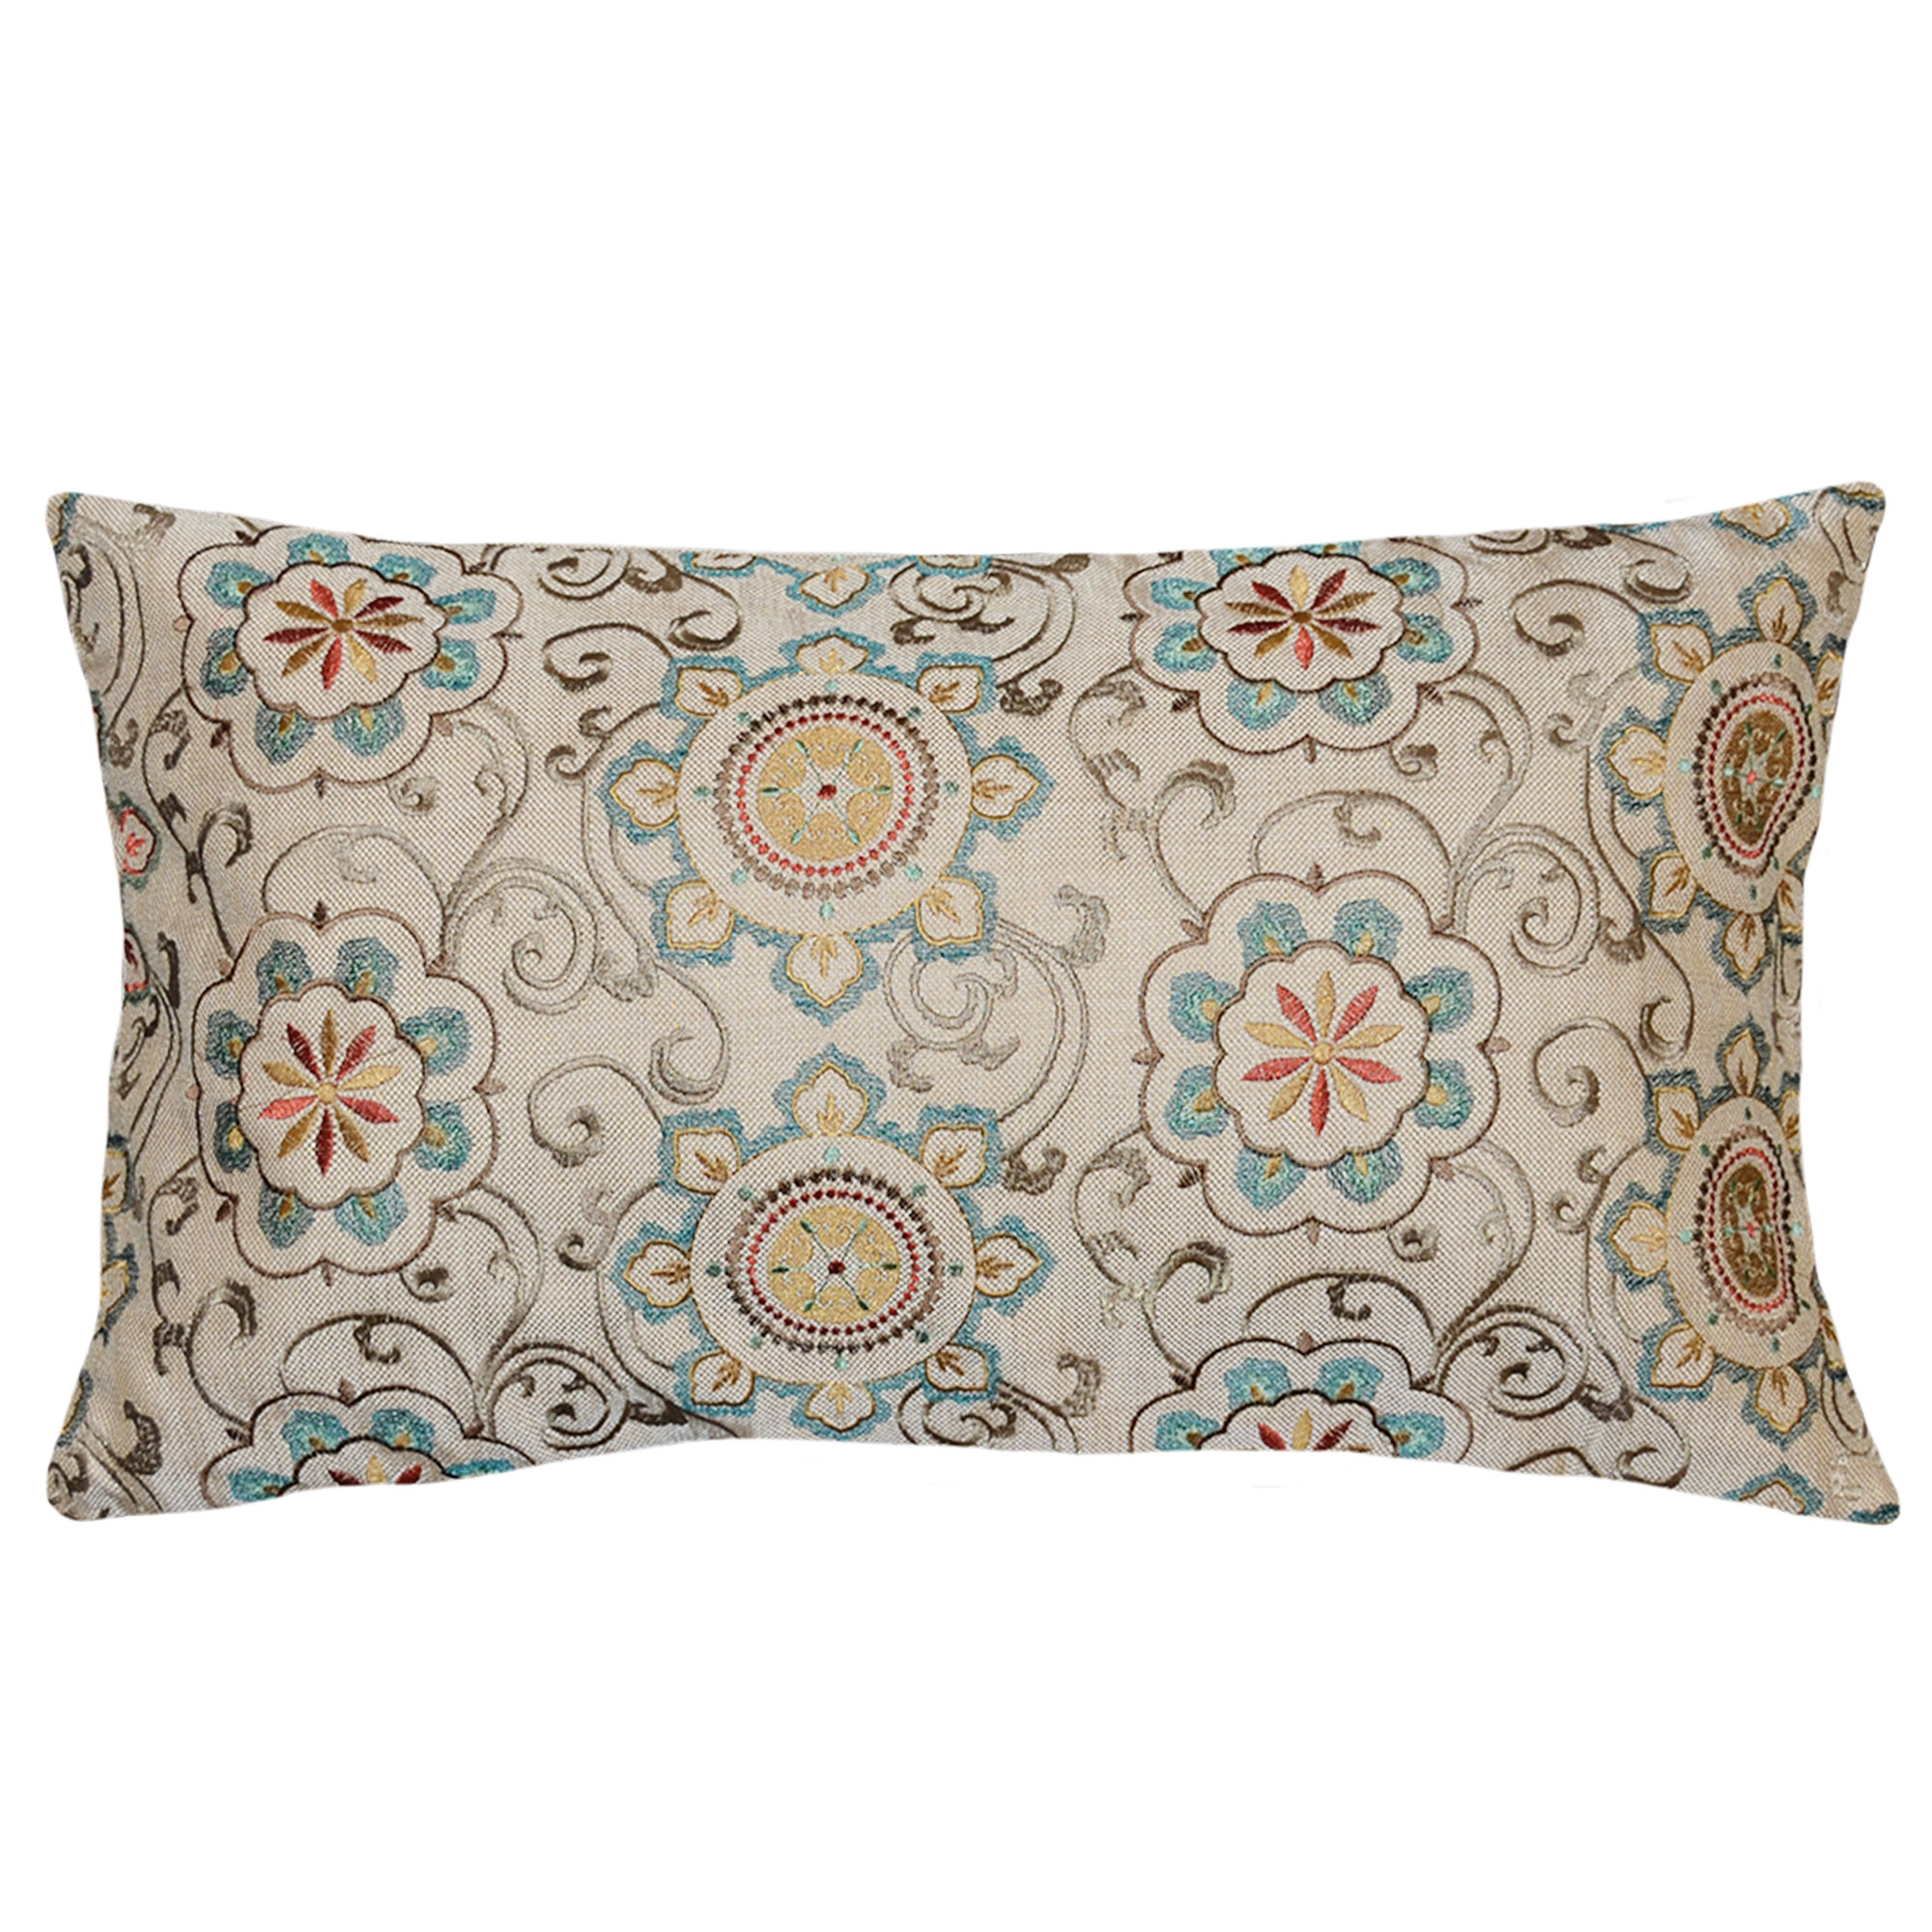 Zulili Rectangular Throw Pillow